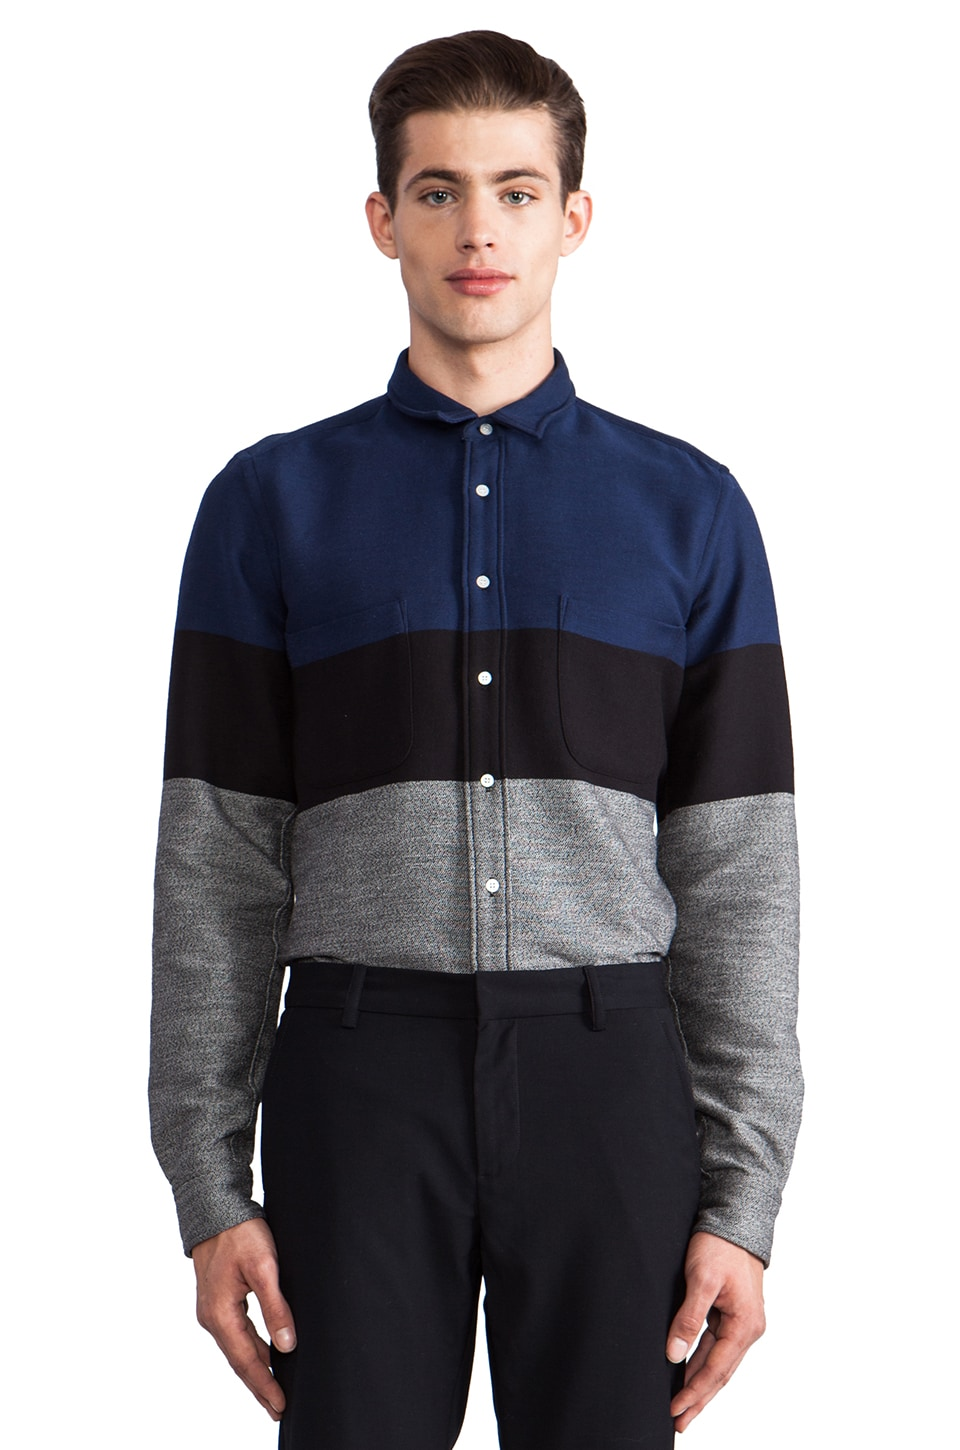 Sidian, Ersatz & Vanes Color Block Button Down in Blue/ Black/ Noise